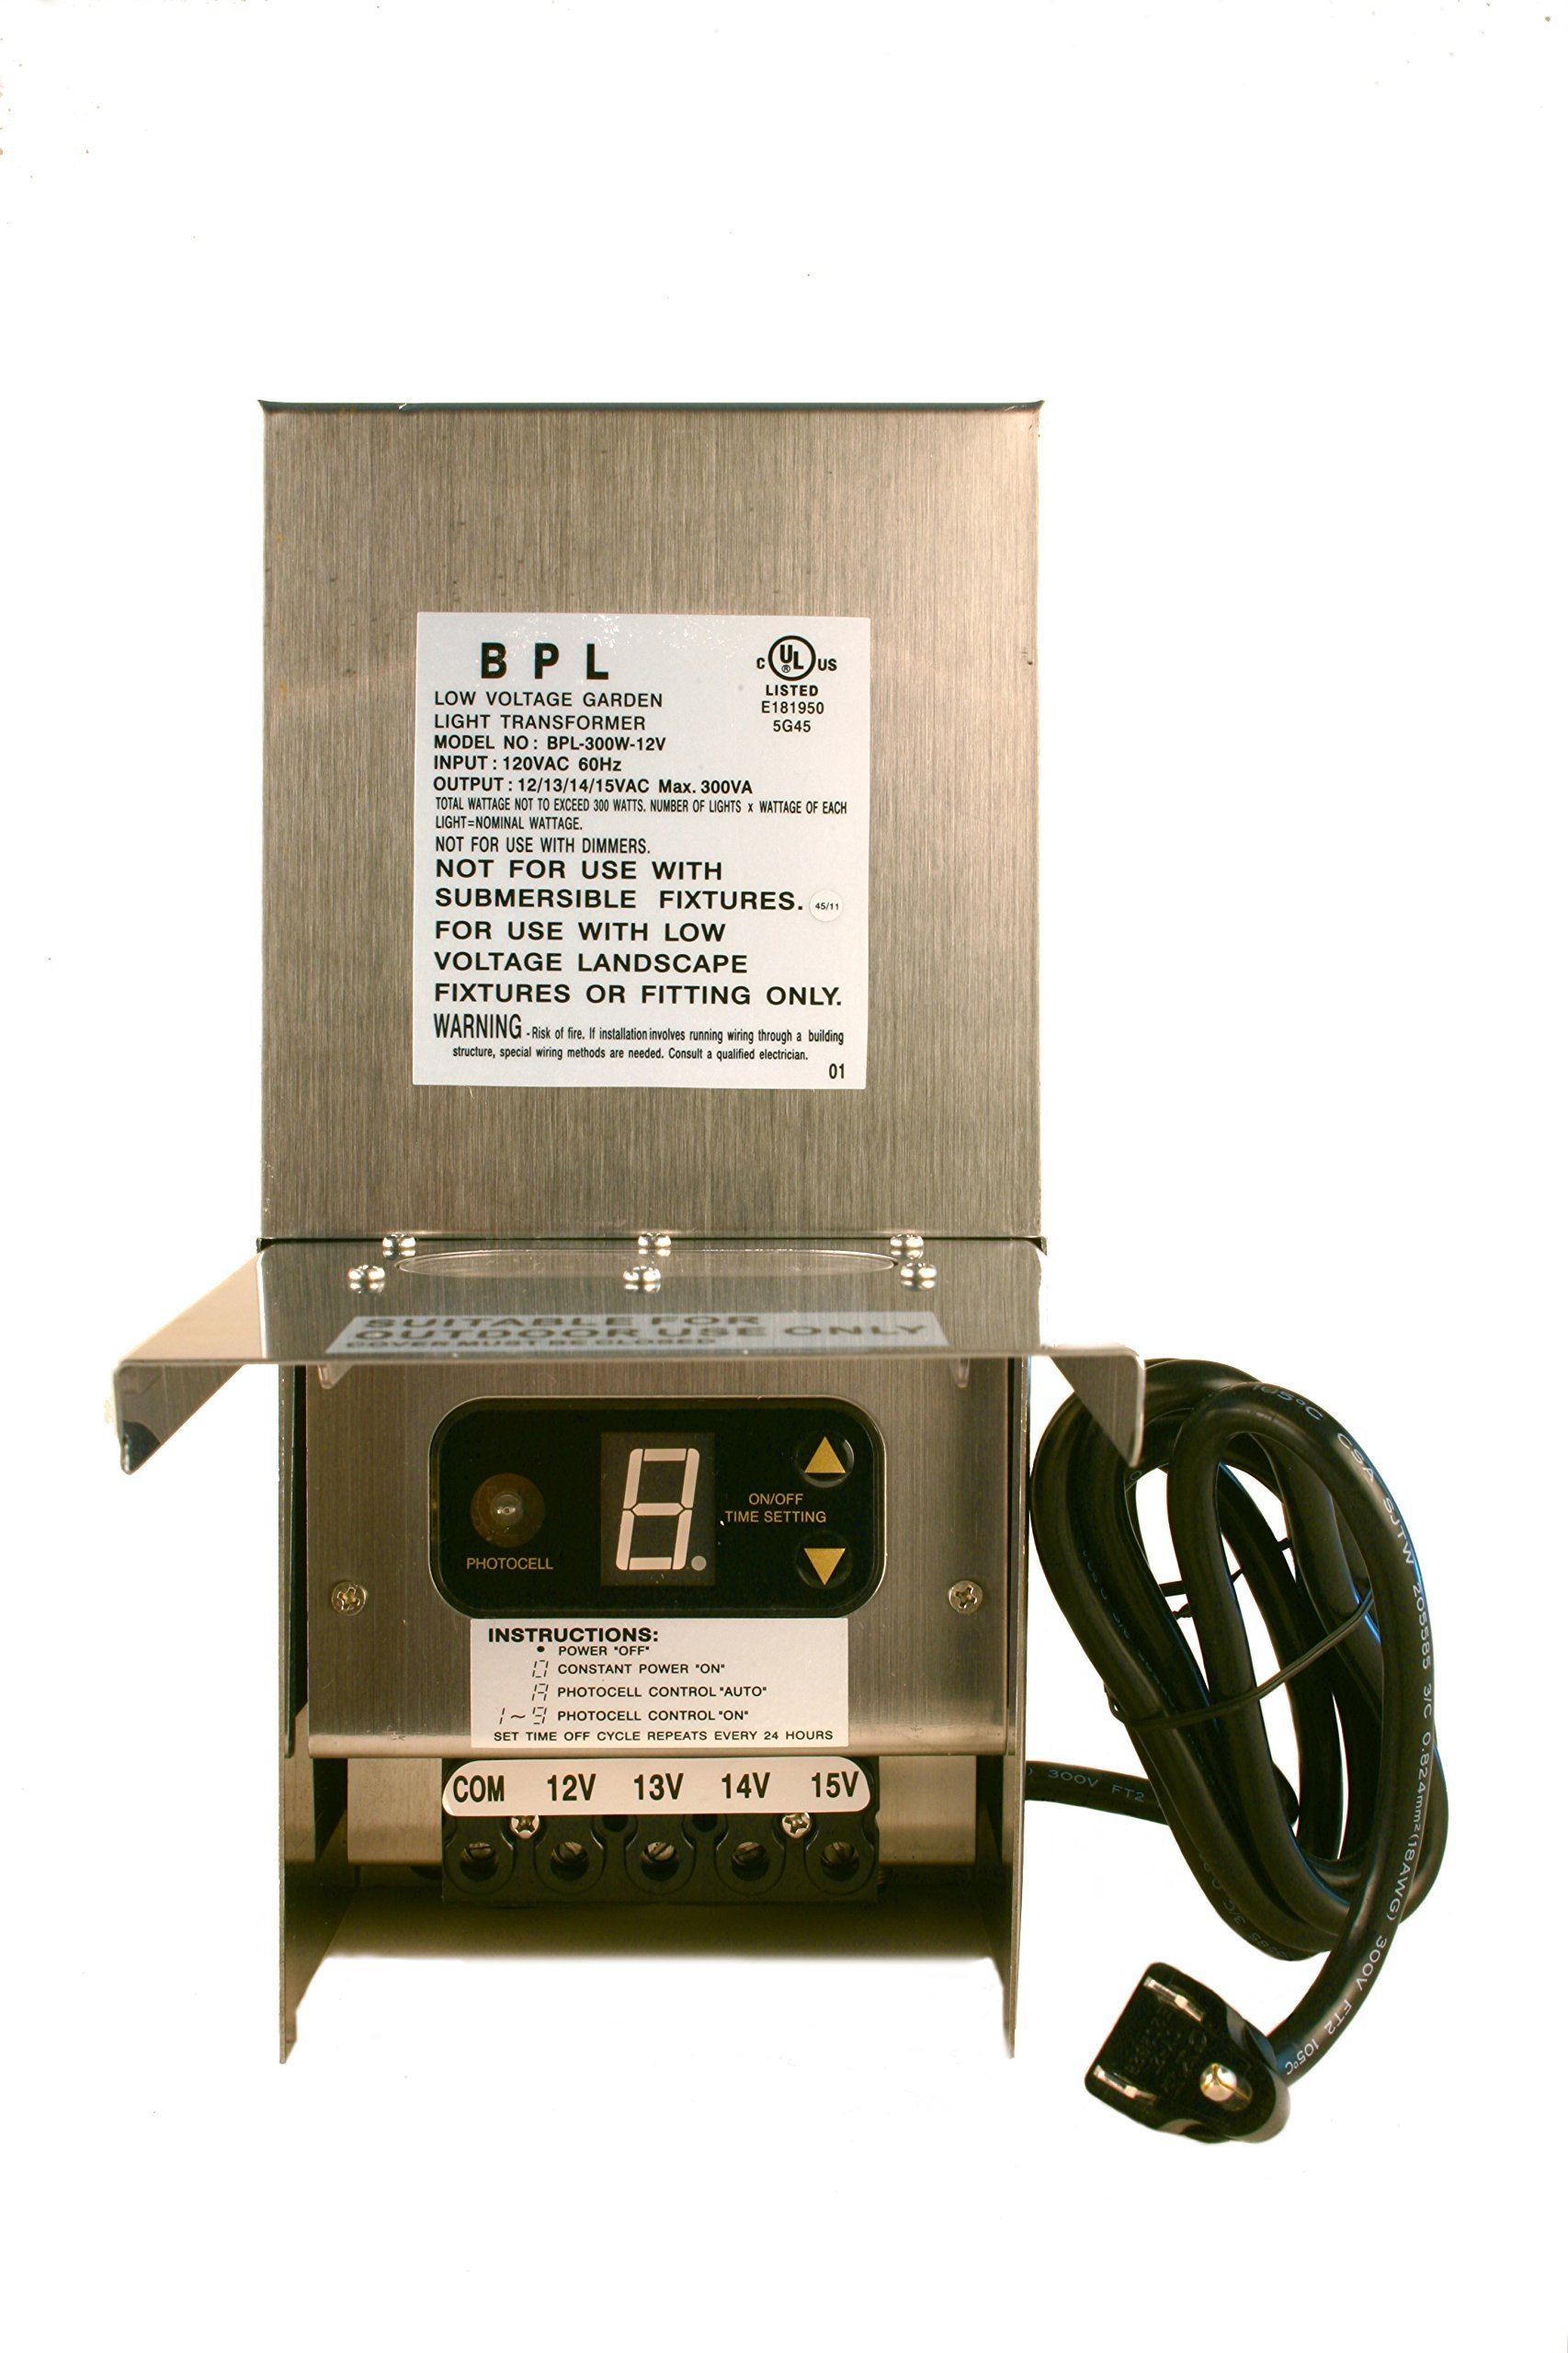 300 Watt Multi Tap Stainless Steel Transformer by Best Pro Lighting